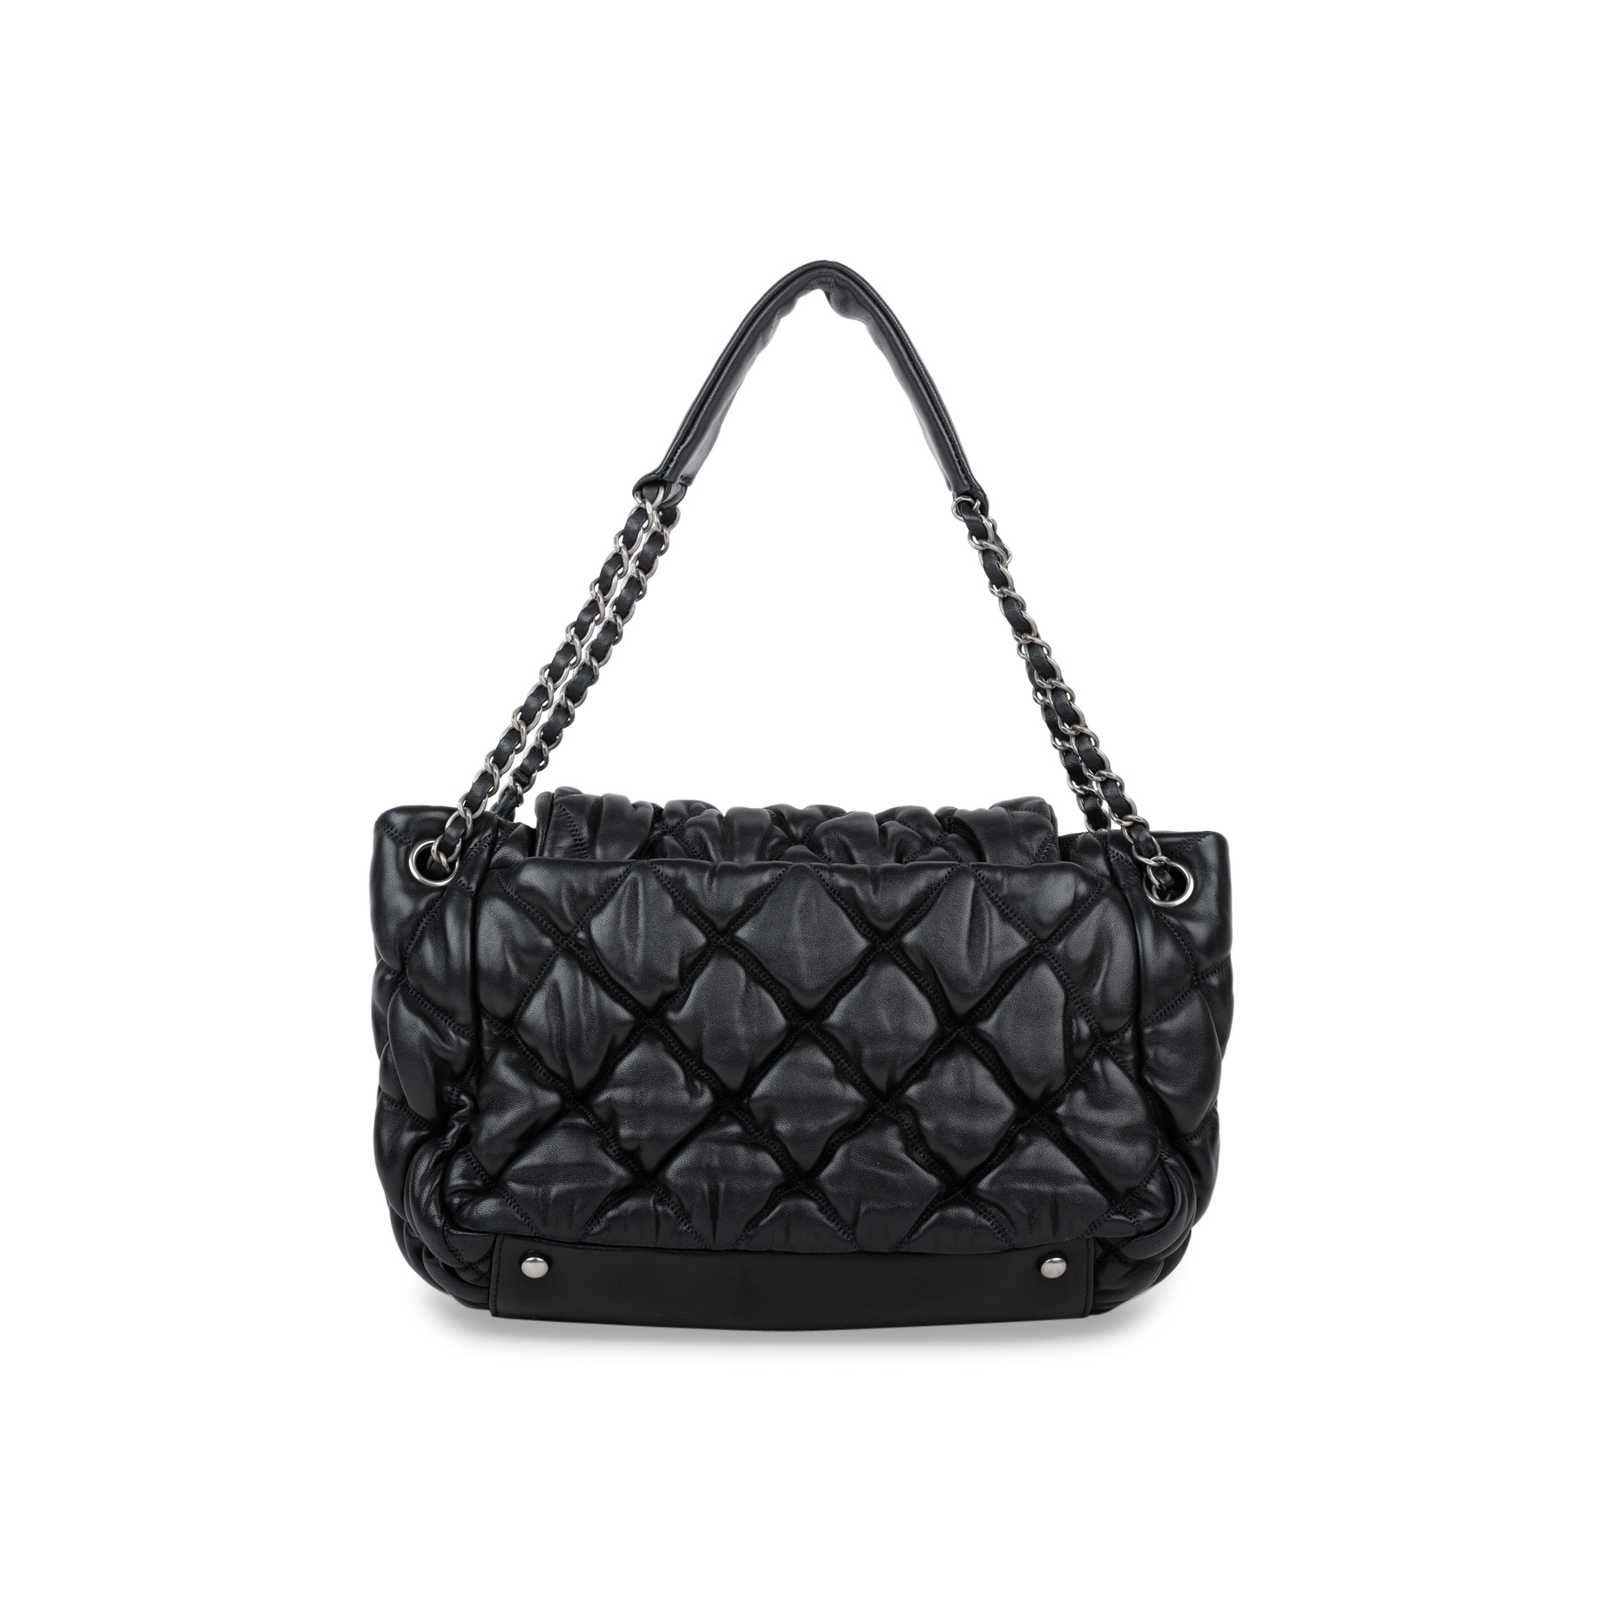 3502fe5247eb ... Authentic Second Hand Chanel Bubble Quilt Accordion Flap Bag  (PSS-566-00007) ...